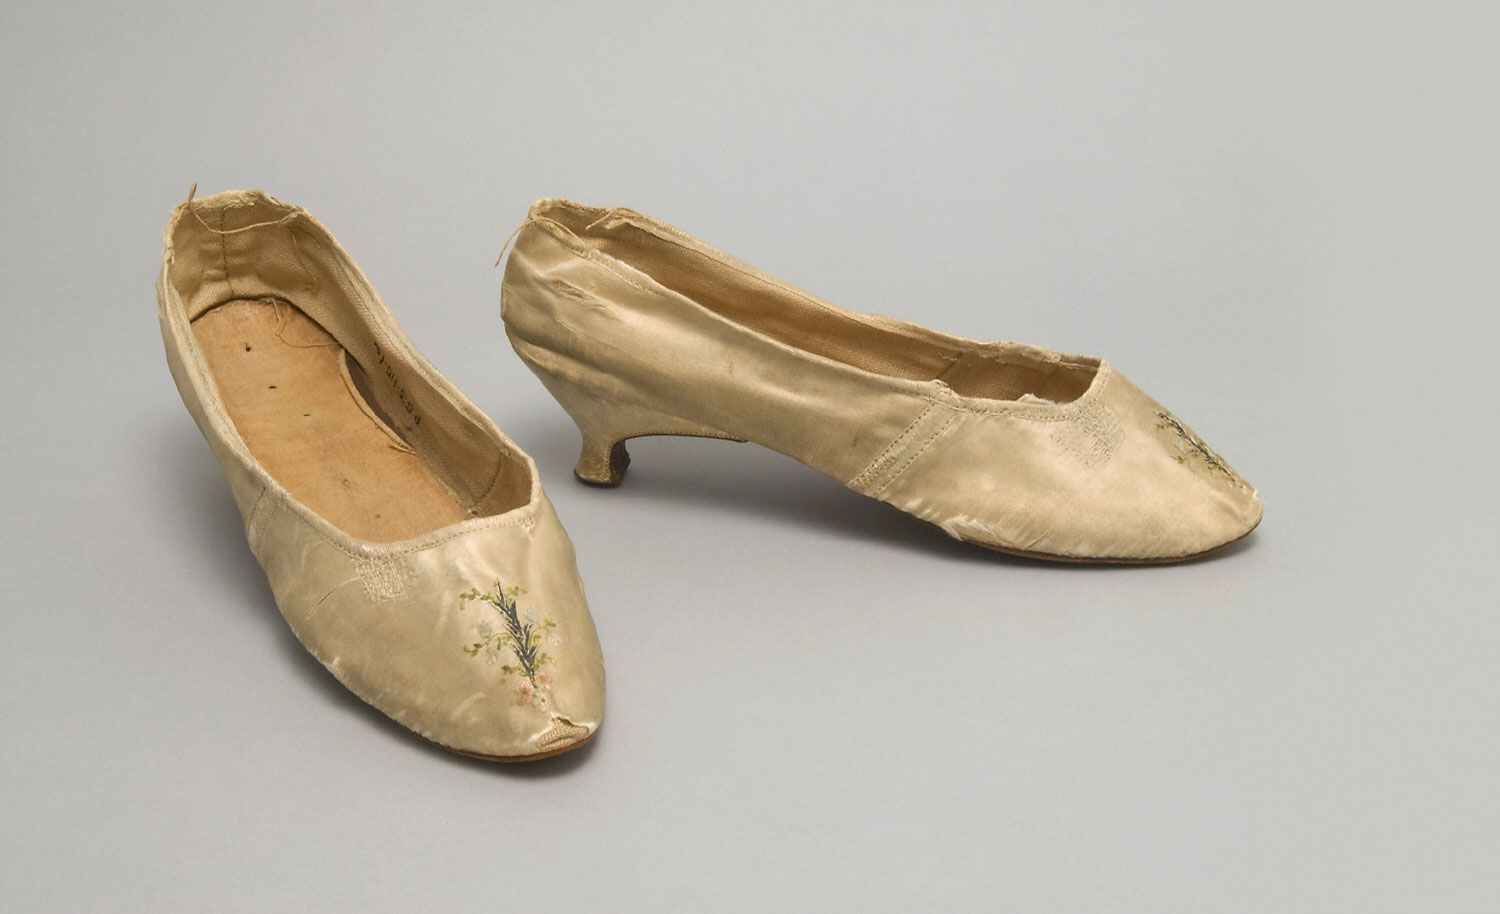 Philadelphia Museum of Art - Collections Object : Woman's Shoes